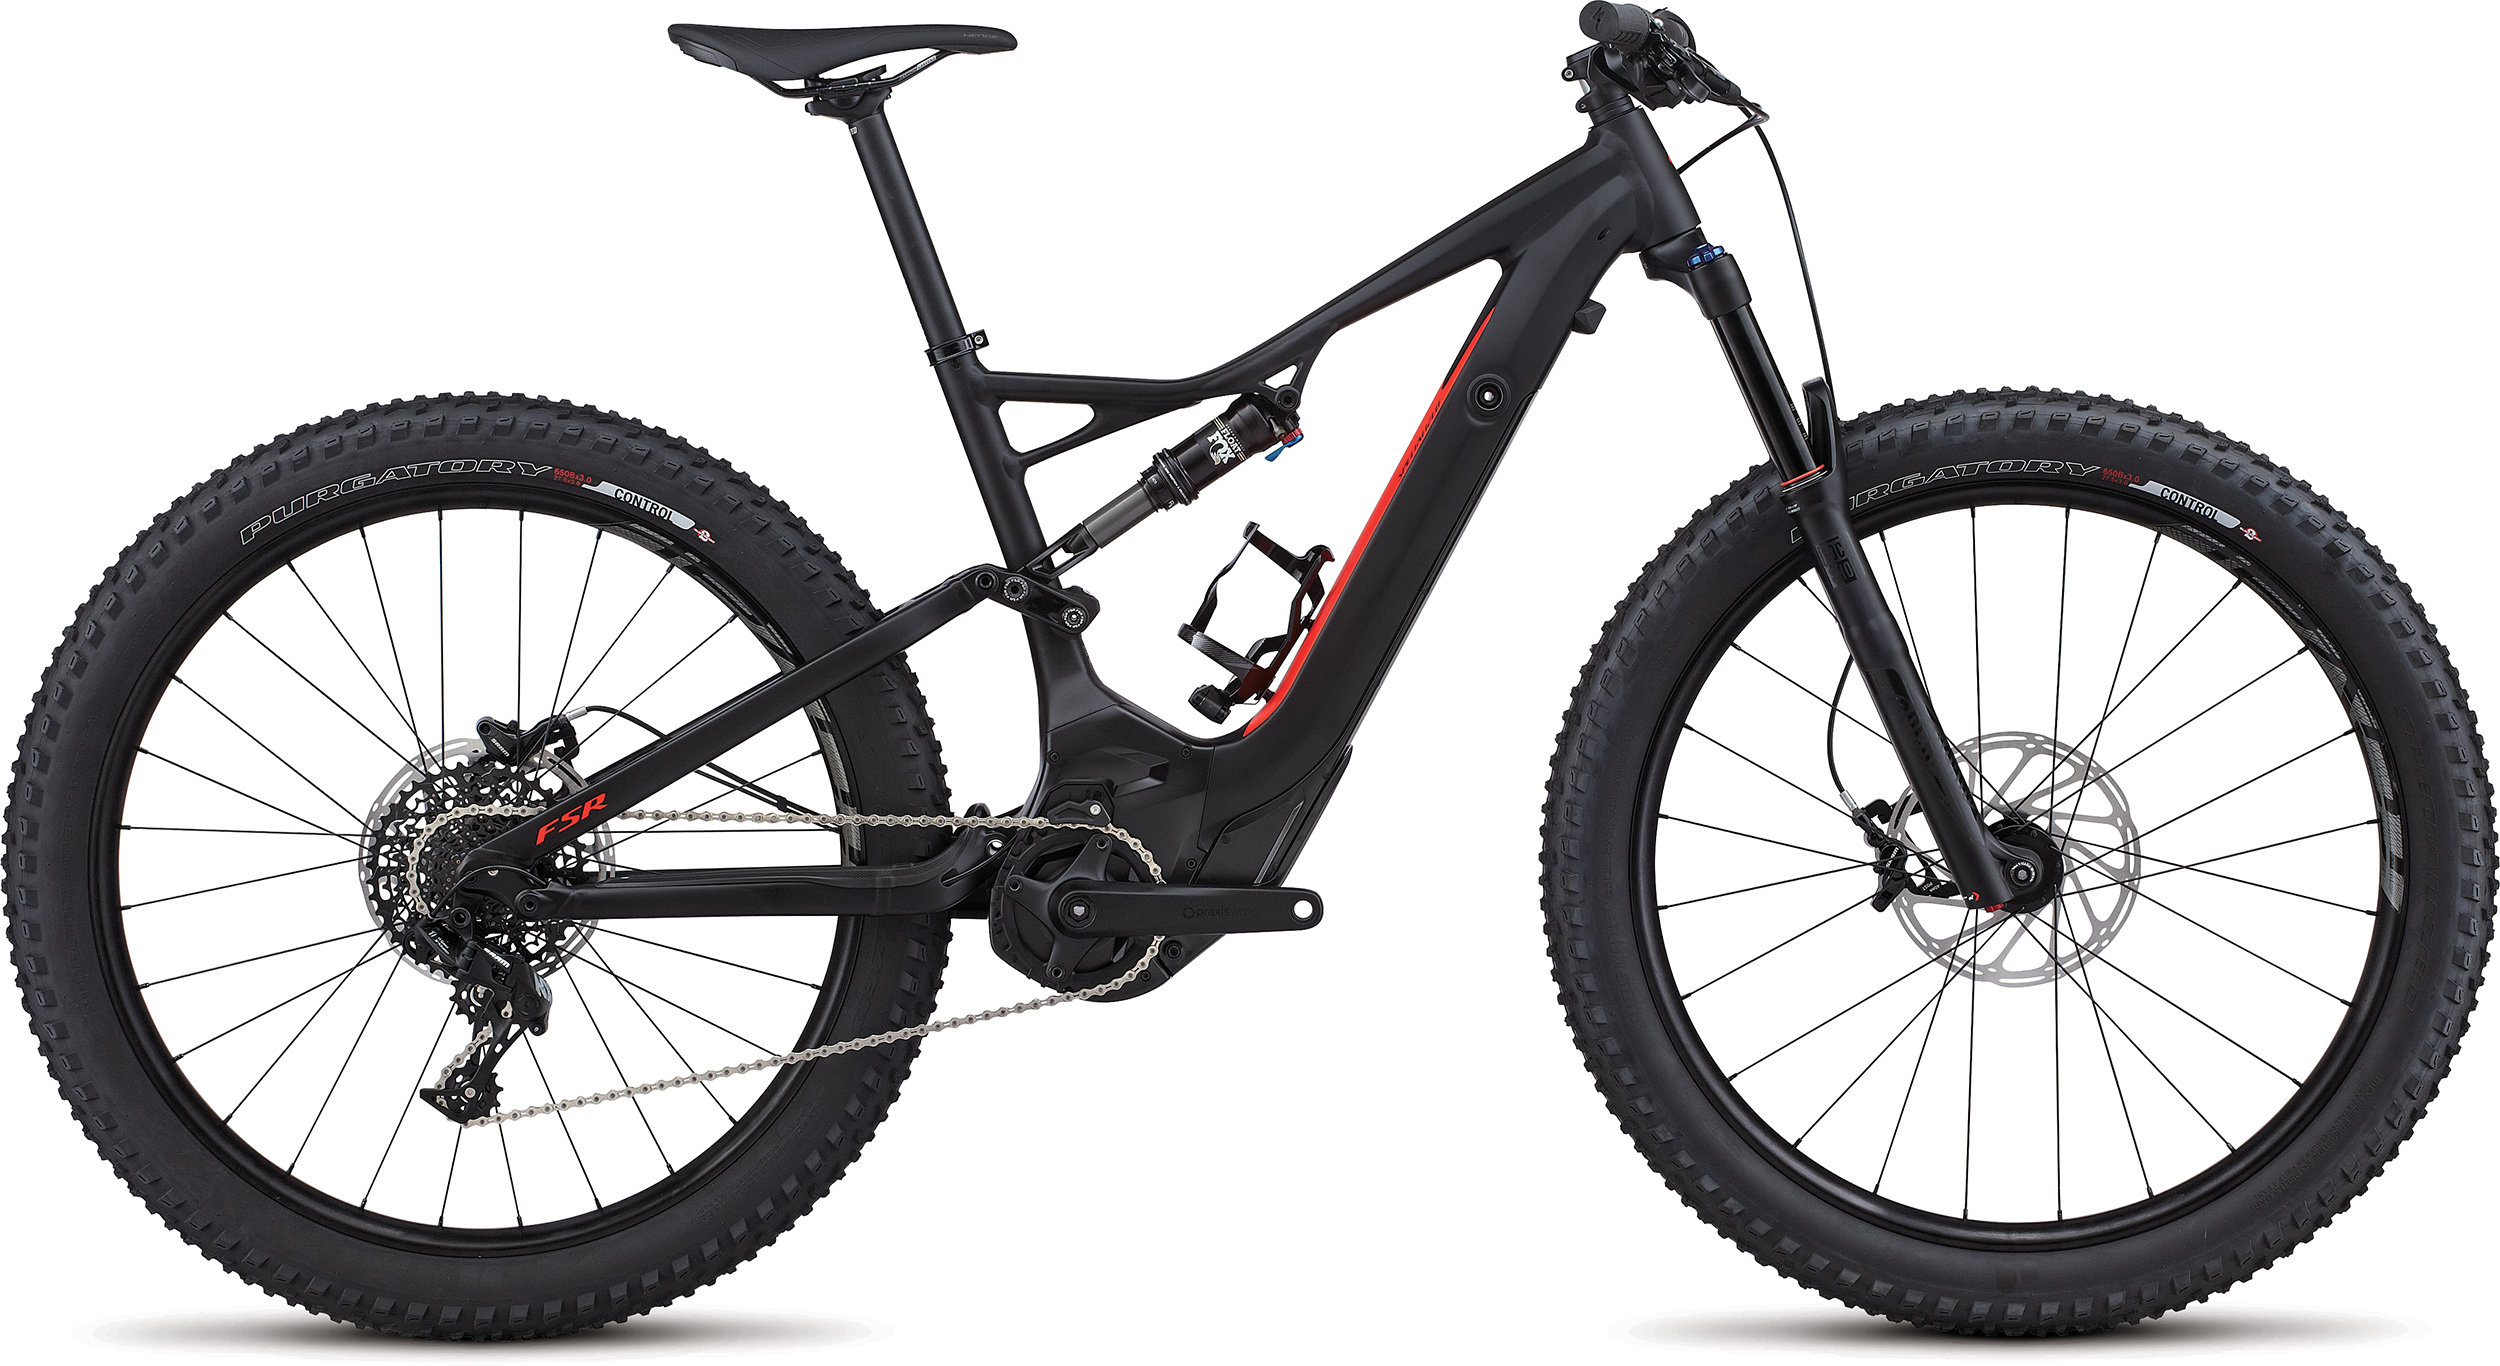 SPECIALIZED LEVO FSR 6FATTIE CE BLK/RKTRED L - Bike Zone